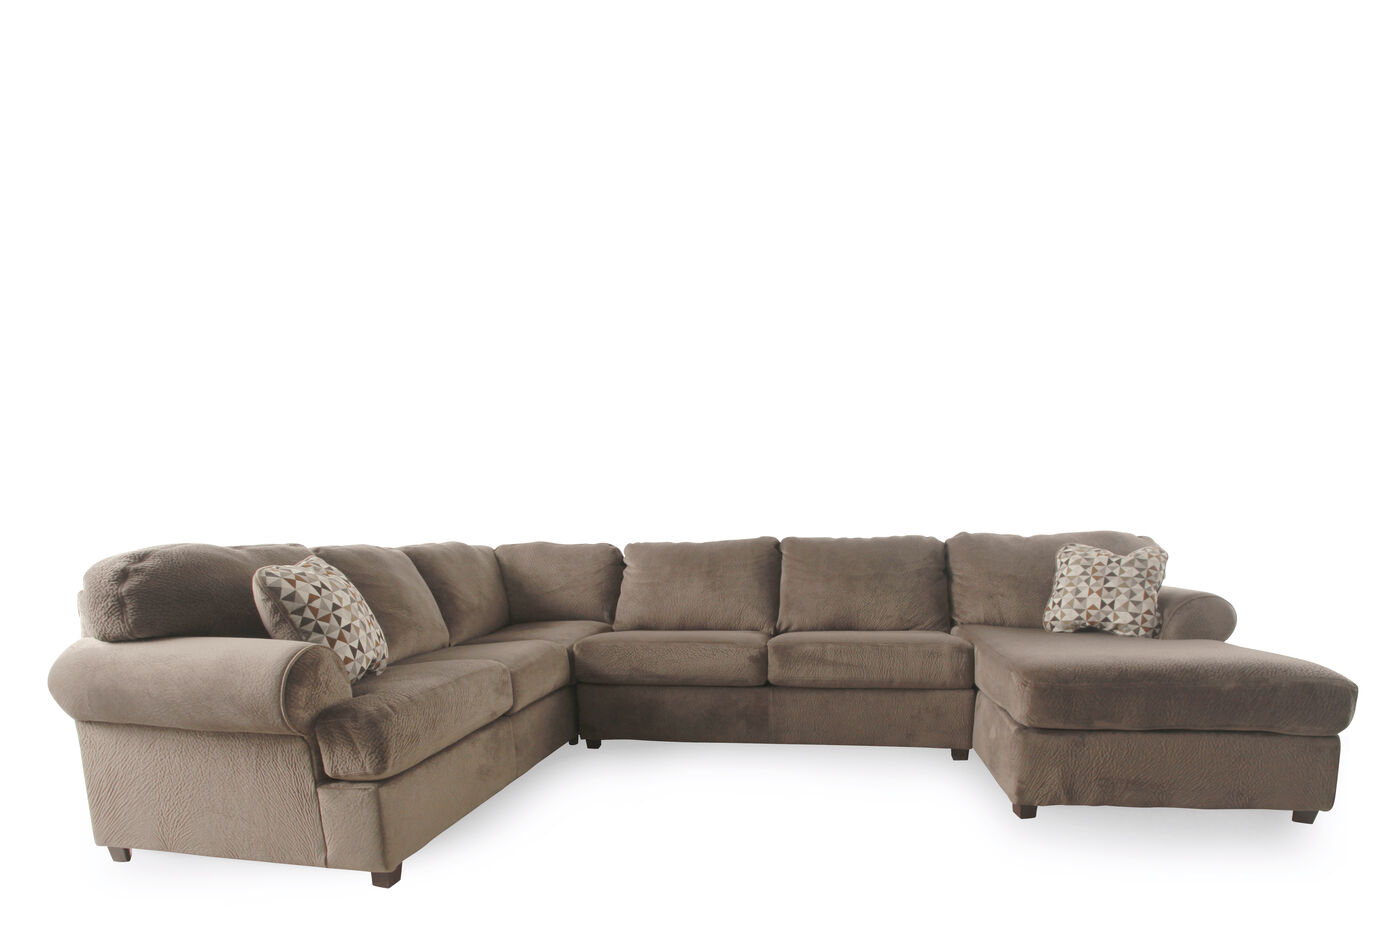 ashley love jessa by sofa sylvan place wedge room charenton furniture dune living sectional